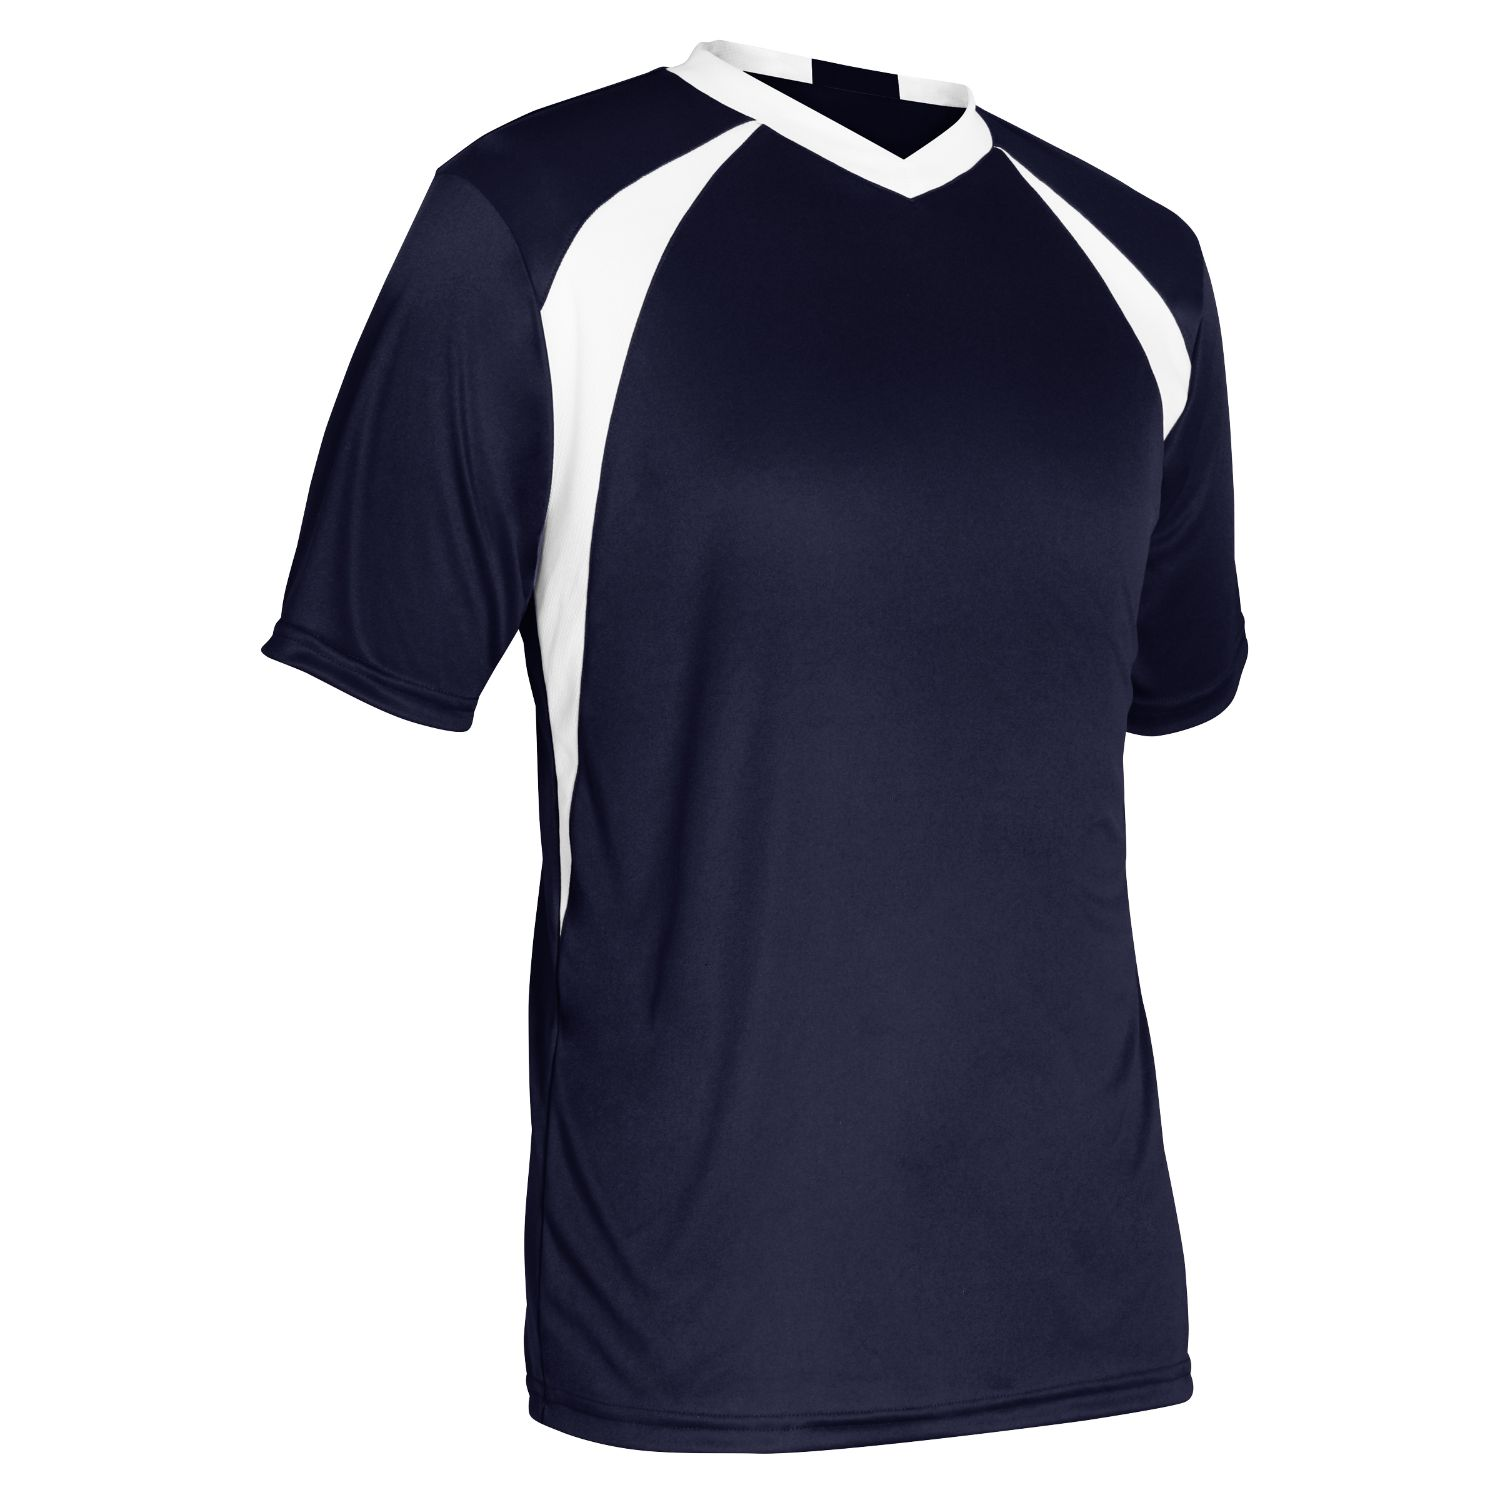 Champro Adult Sweeper Soccer Jersey Navy White Small